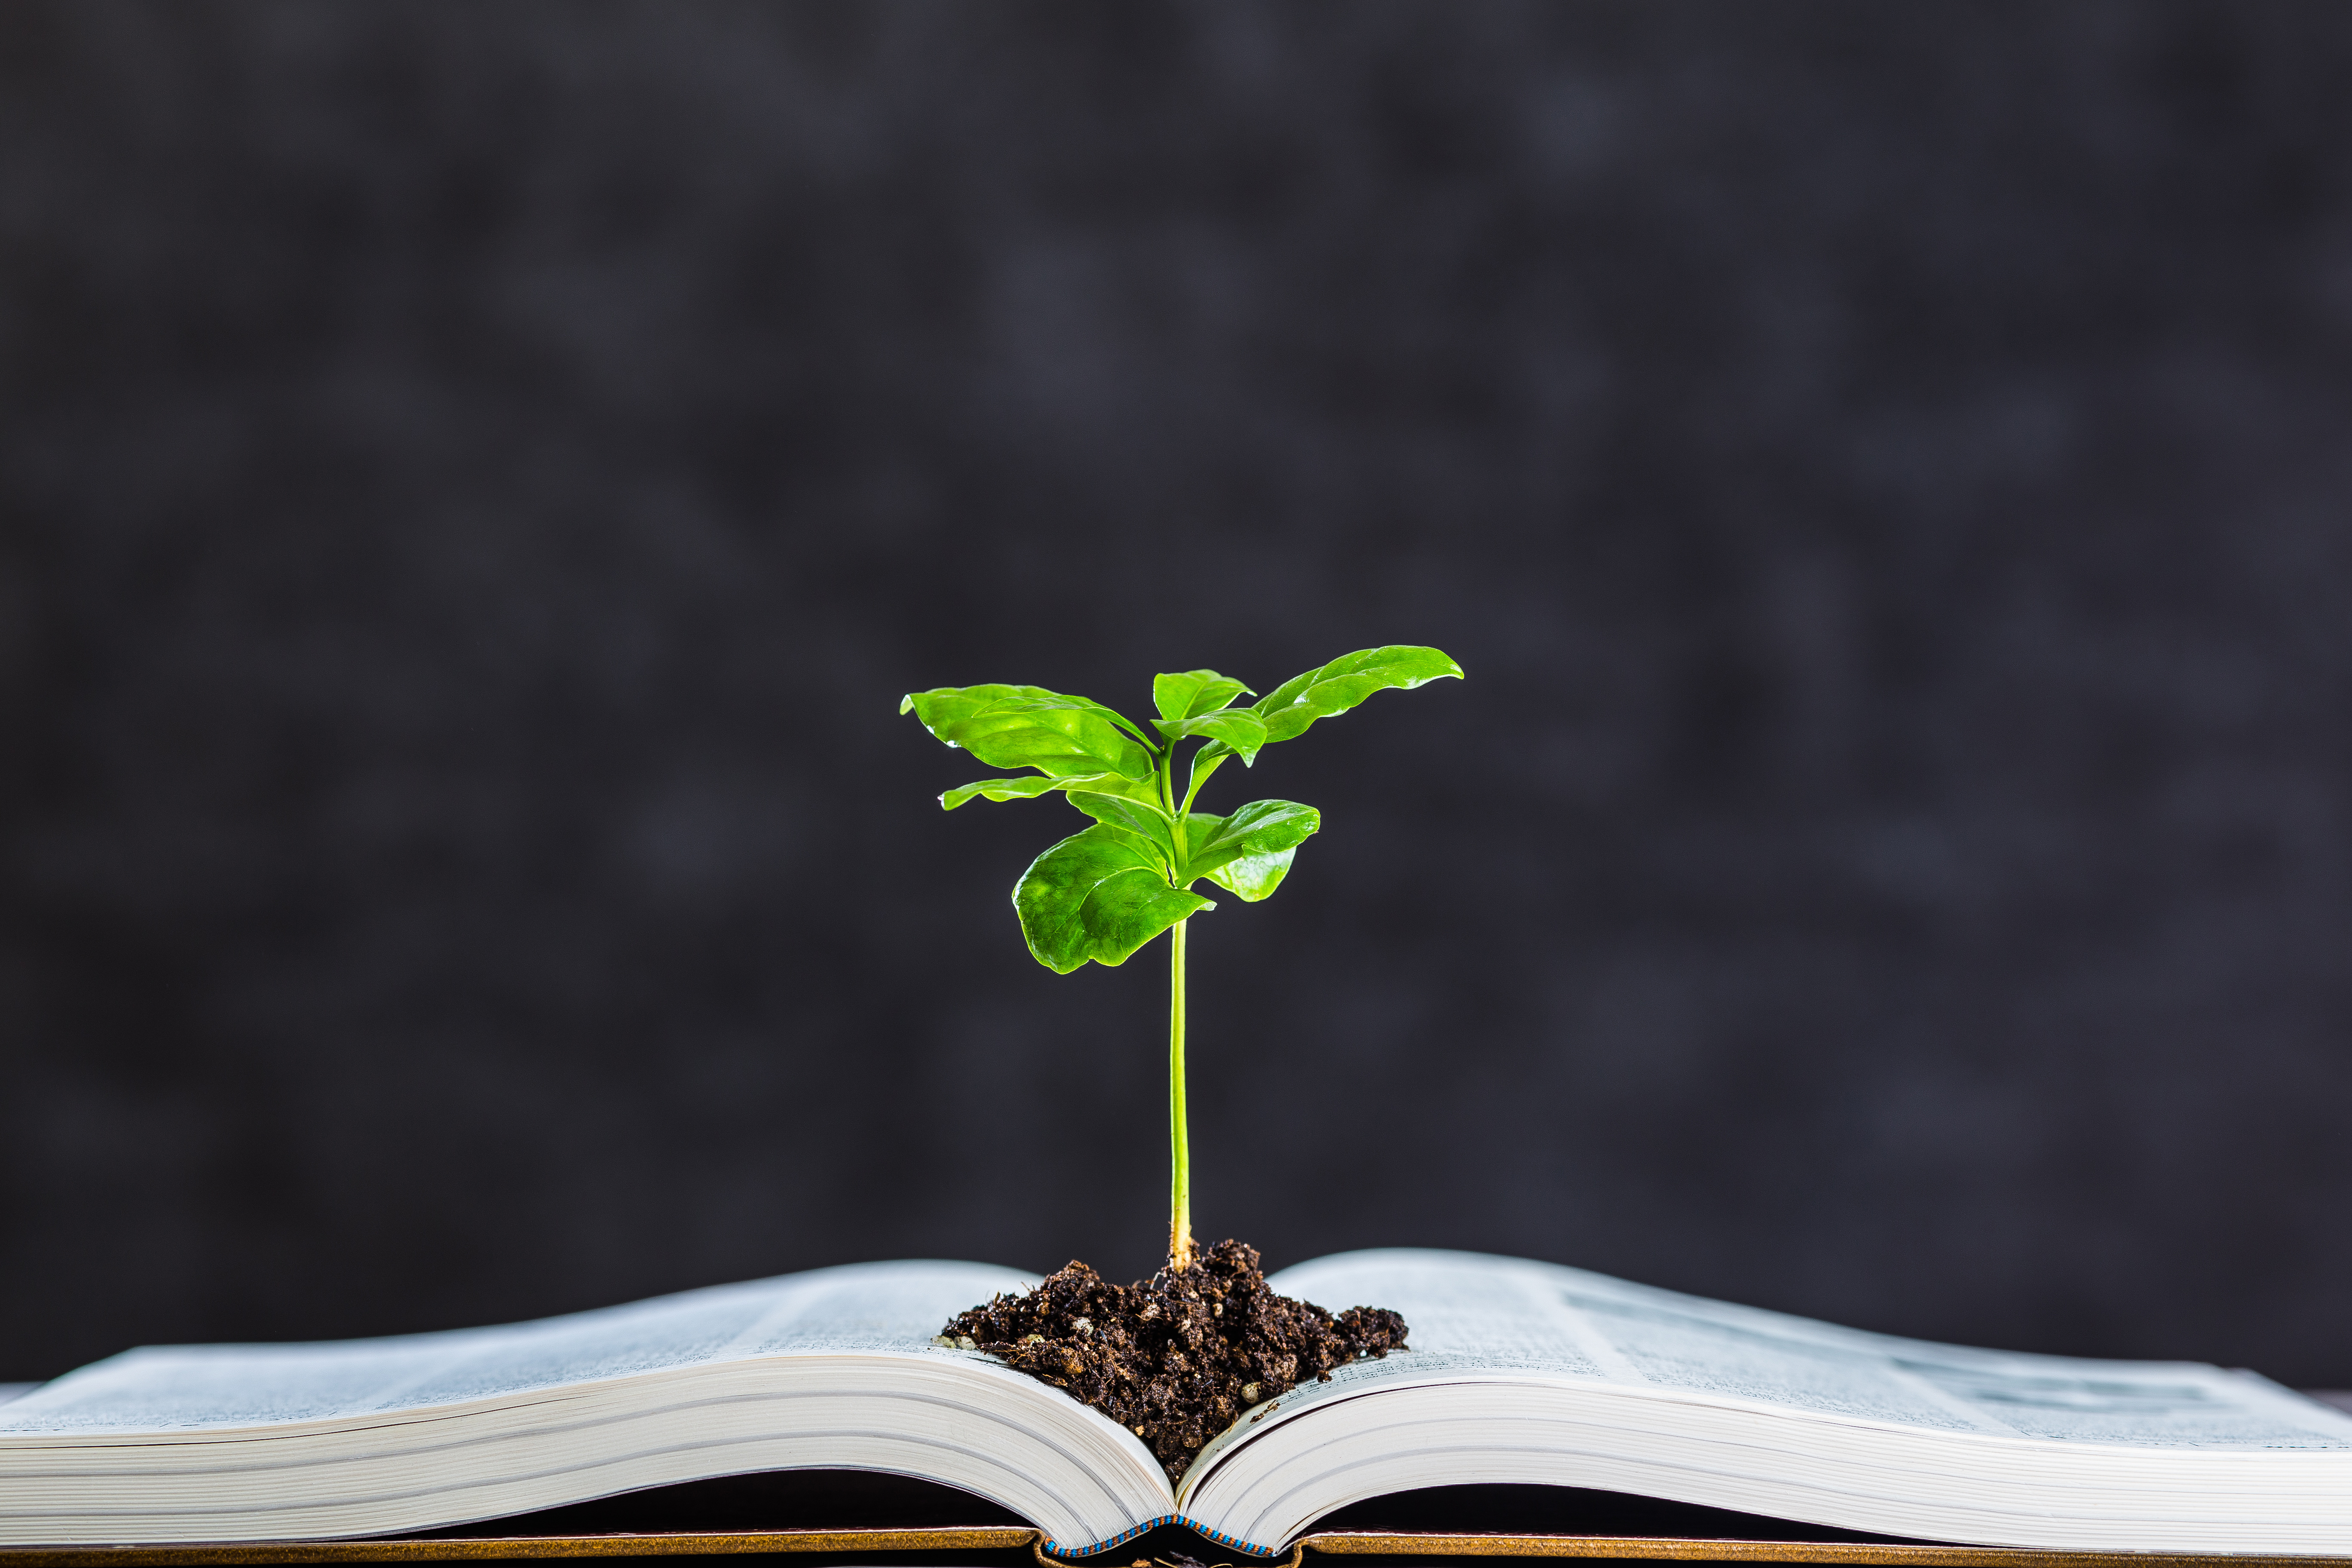 plant growing out of book